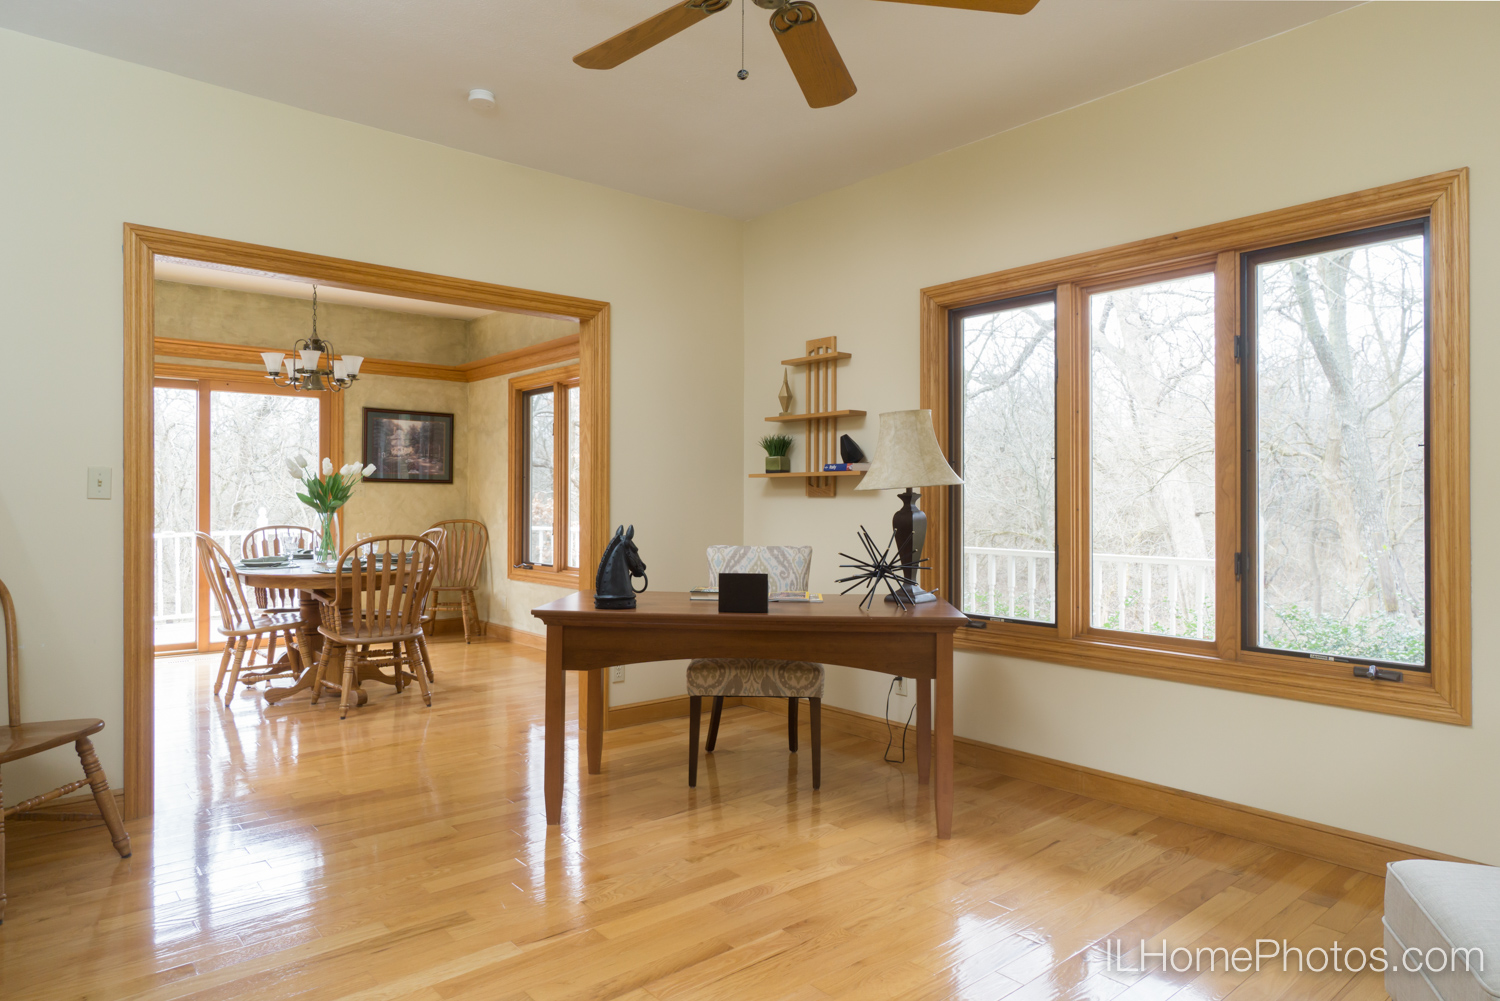 Interior home office and dining room photograph for real estate :: Illinois Home Photography by Michael Gowin, Lincoln, IL